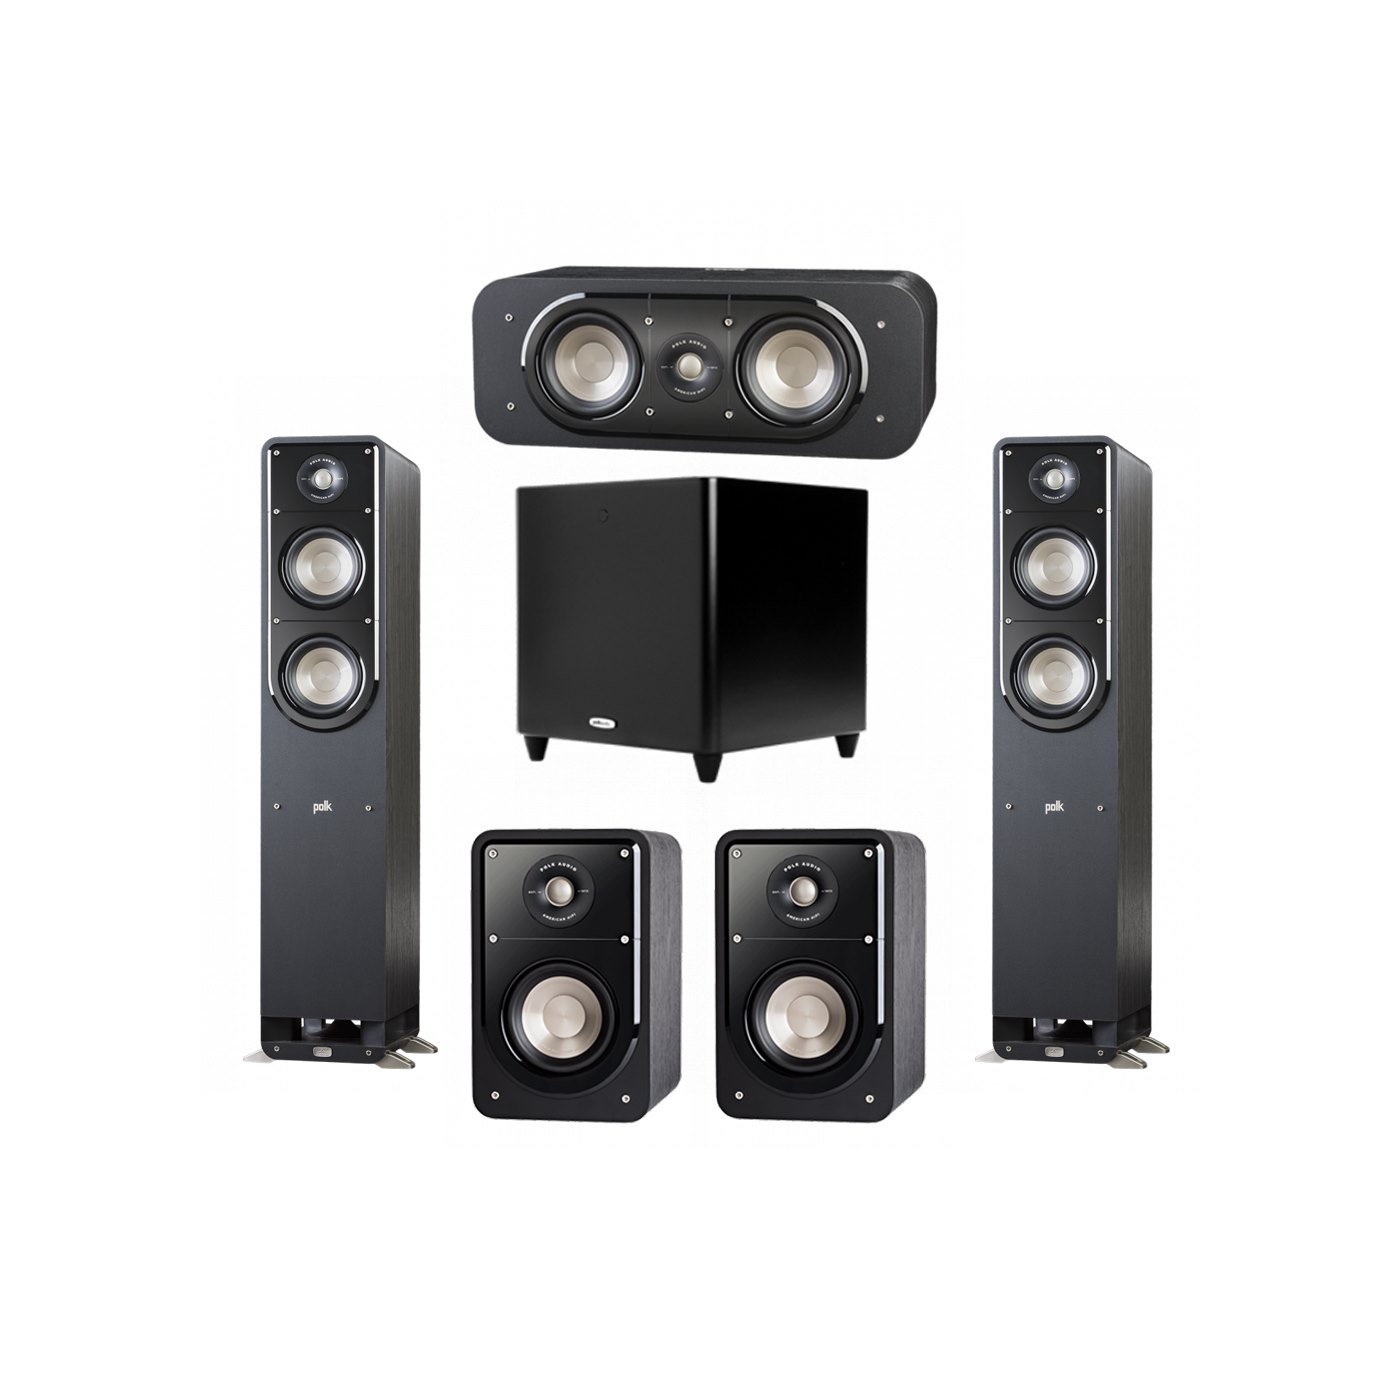 Polk Audio Signature 5.1 System with 2 S50 Tower Speaker, 1 Polk S30 Center Speaker, 2 Polk S15 Bookshelf Speaker, 1 Polk DSW PRO 660 wi Subwoofer